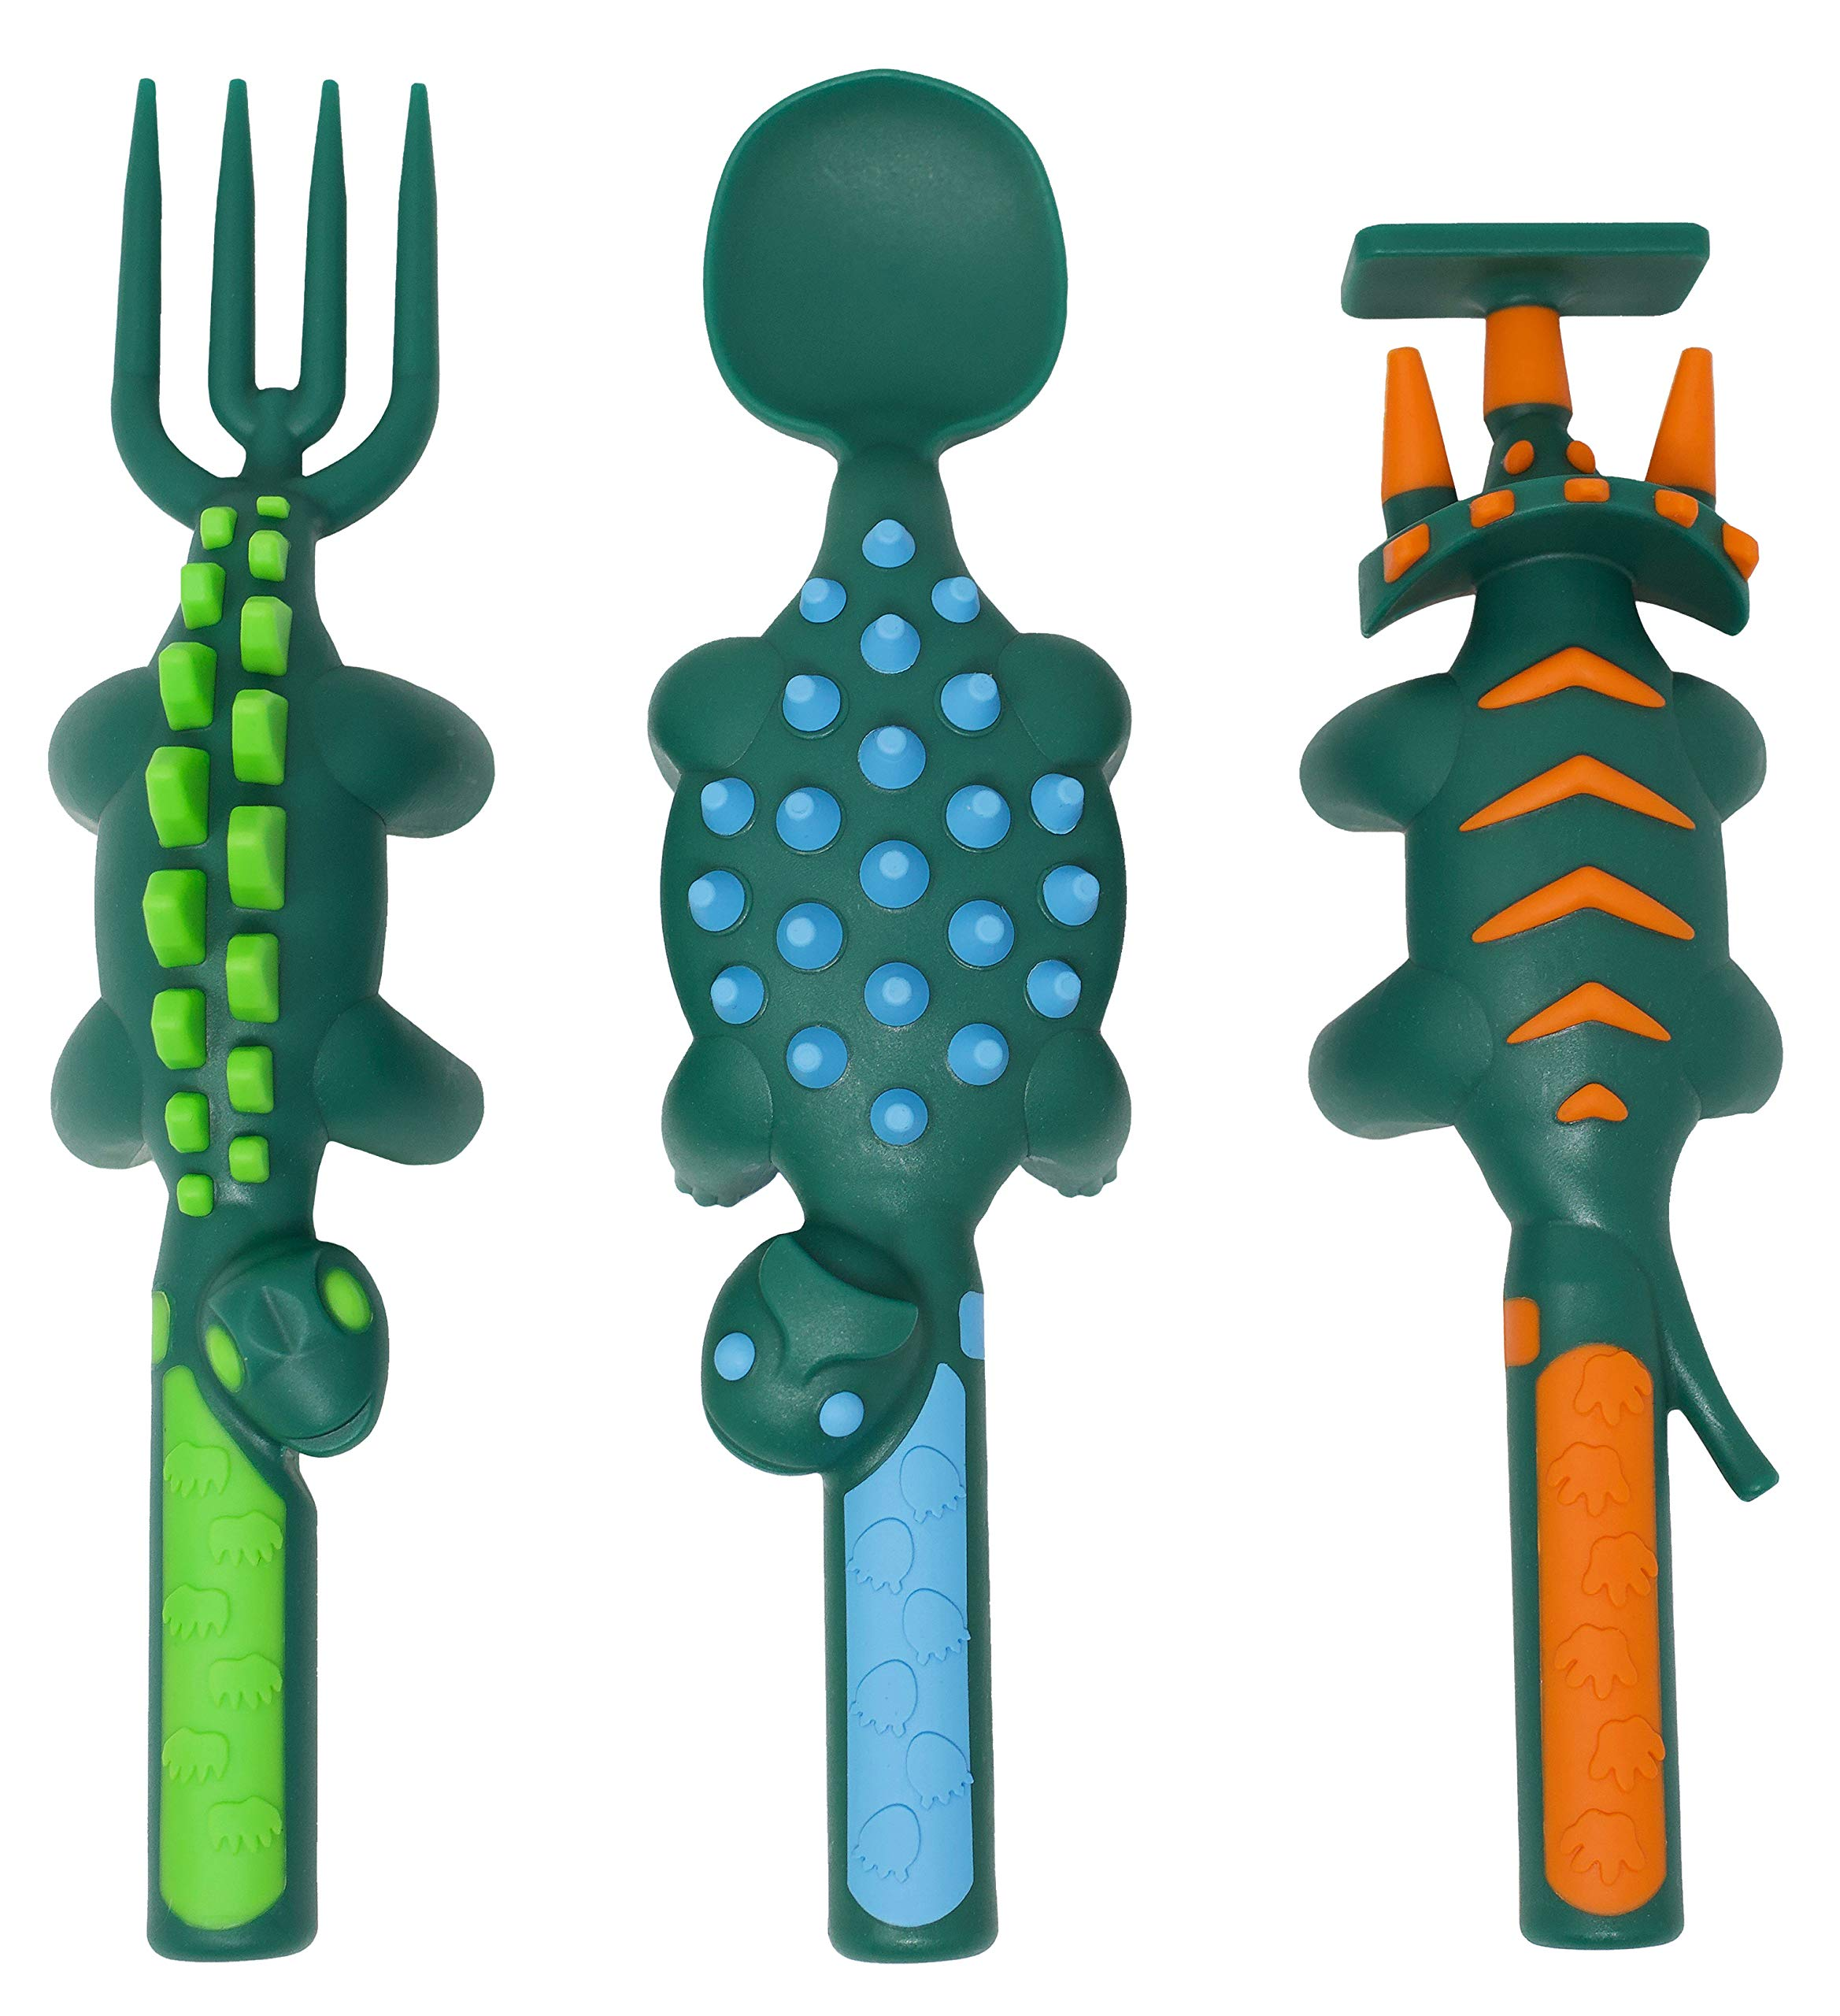 Constructive Eating Dinosaur Utensil Set for Toddlers, Infants, Babies and Kids - Flatware Toys are Made in The USA with FDA Approved Materials for Safe and Fun Eating, Green